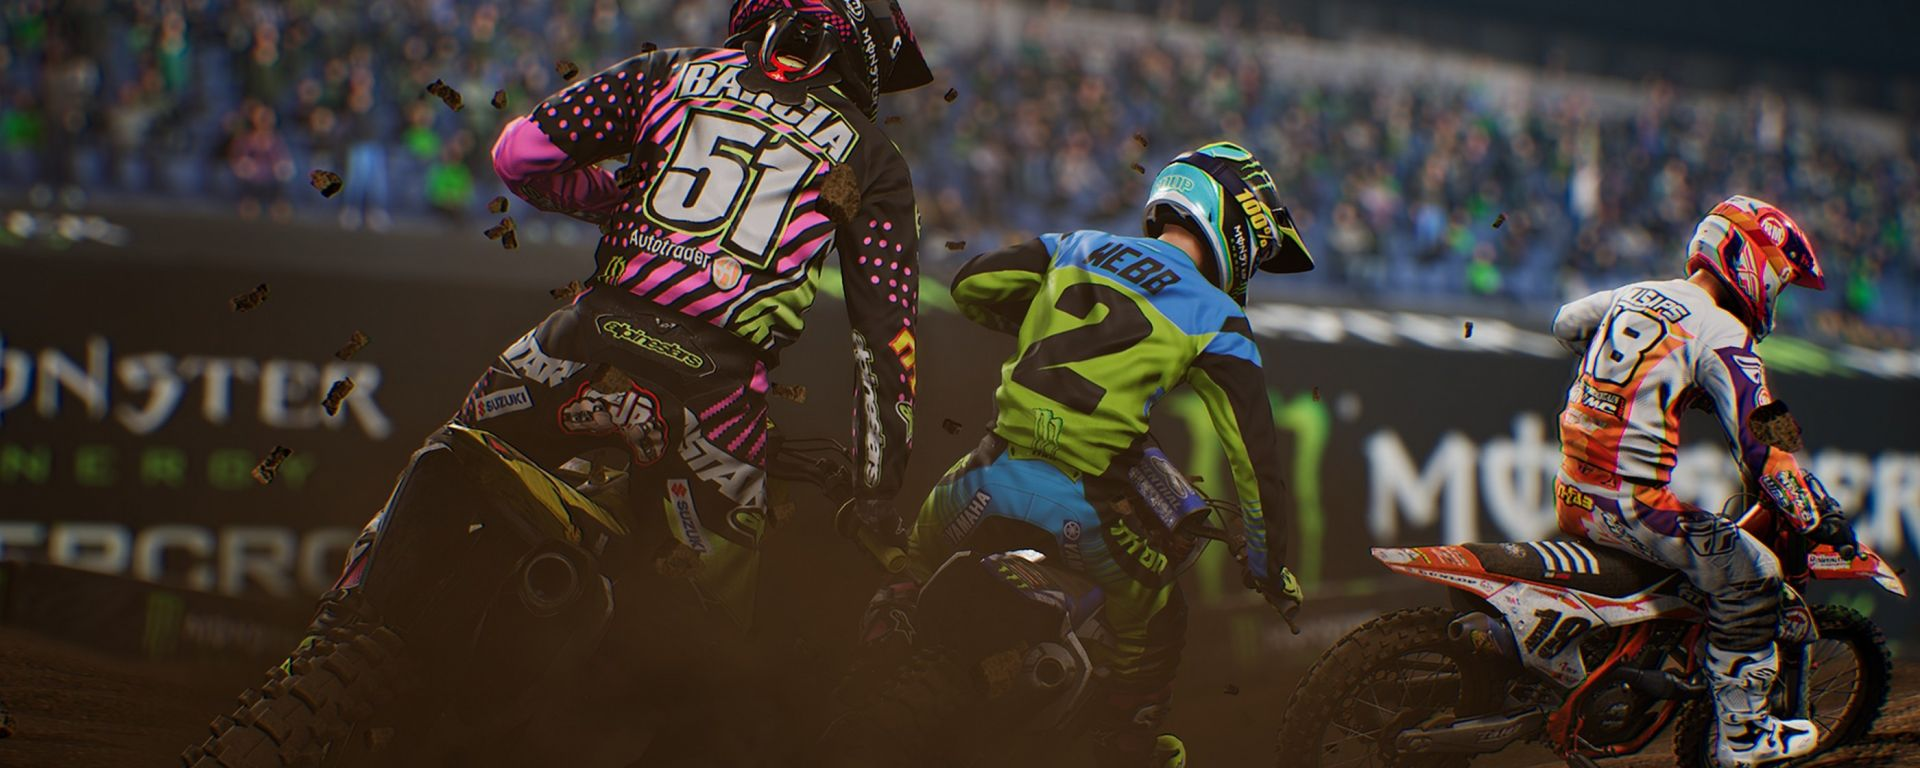 Monster Energy Supercross: non solo per americani